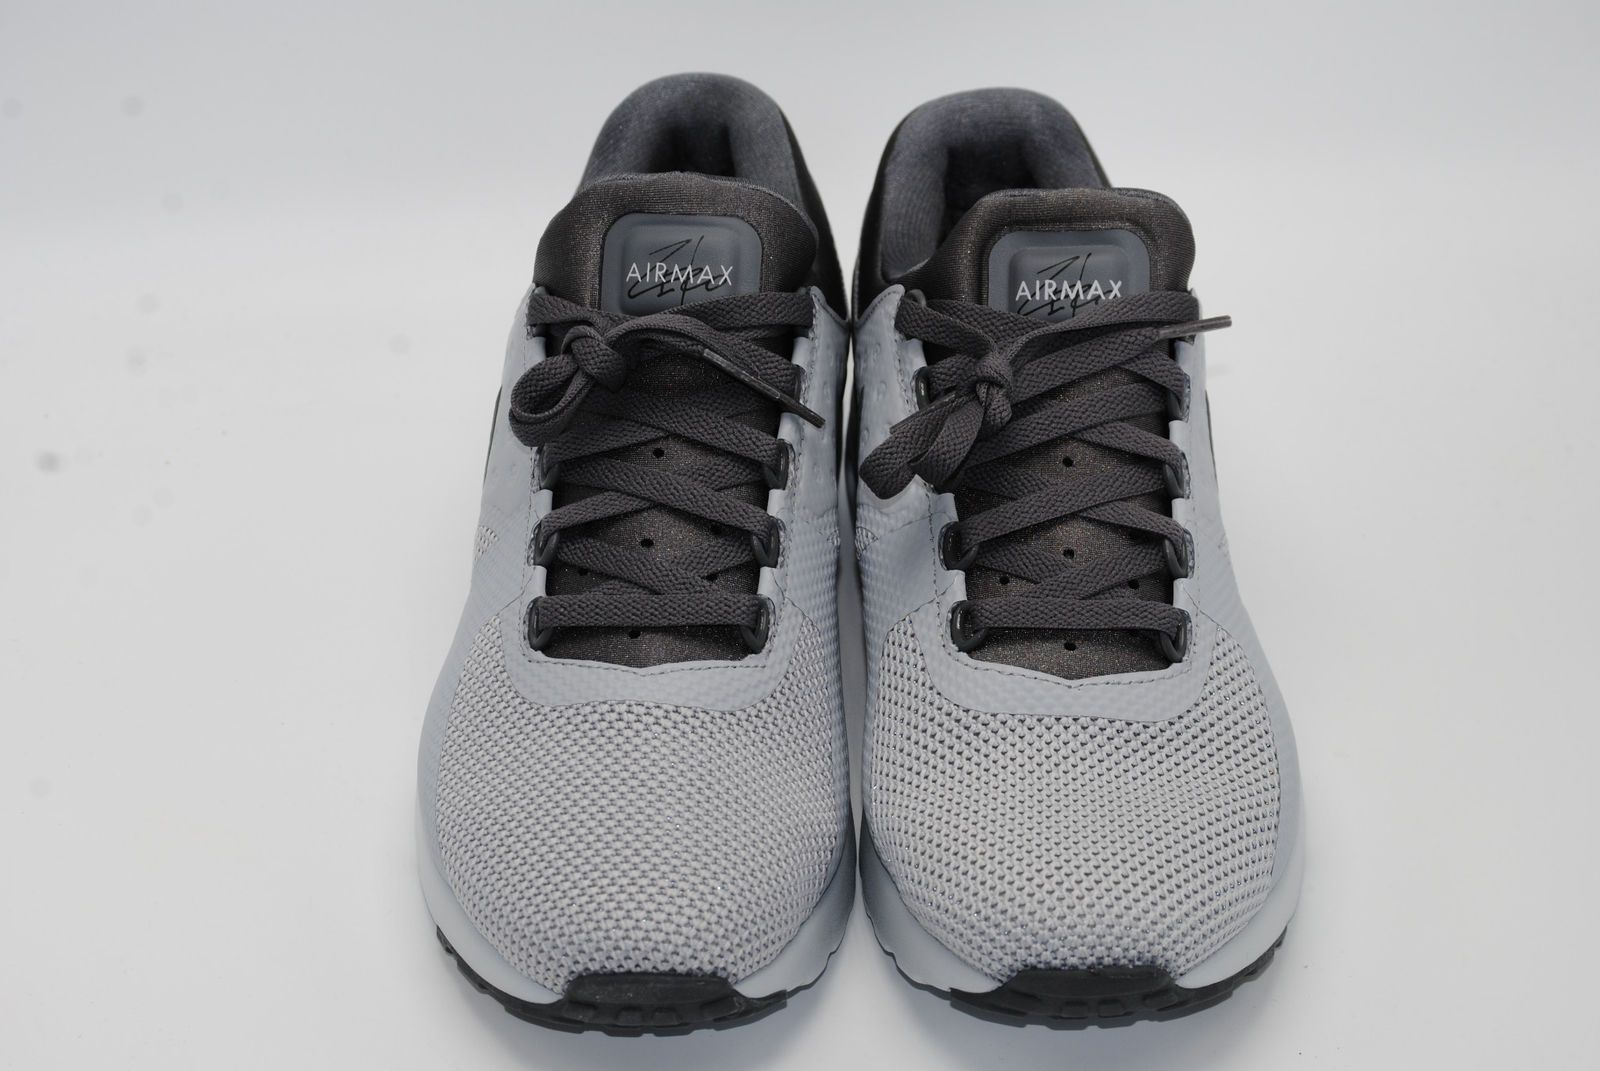 online store e7bc9 44f2f Nike Air Max Zero Essential Men s sneakers 876070 012 Multiple sizes Great  shoes for your footwear choice, Afflink.